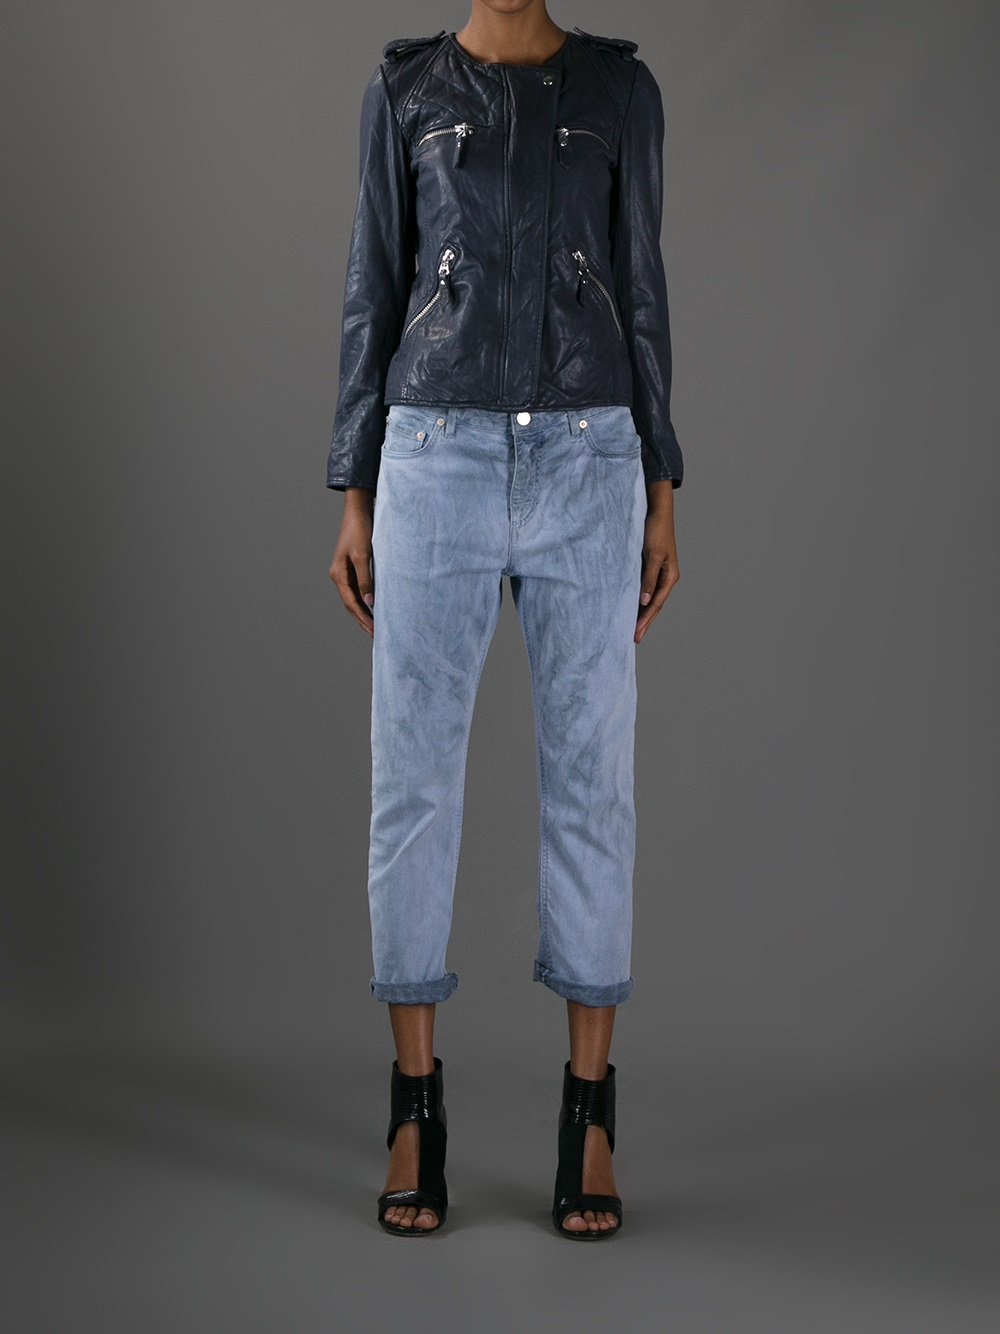 Lyst 201 Toile Isabel Marant Kady Leather Jacket In Blue